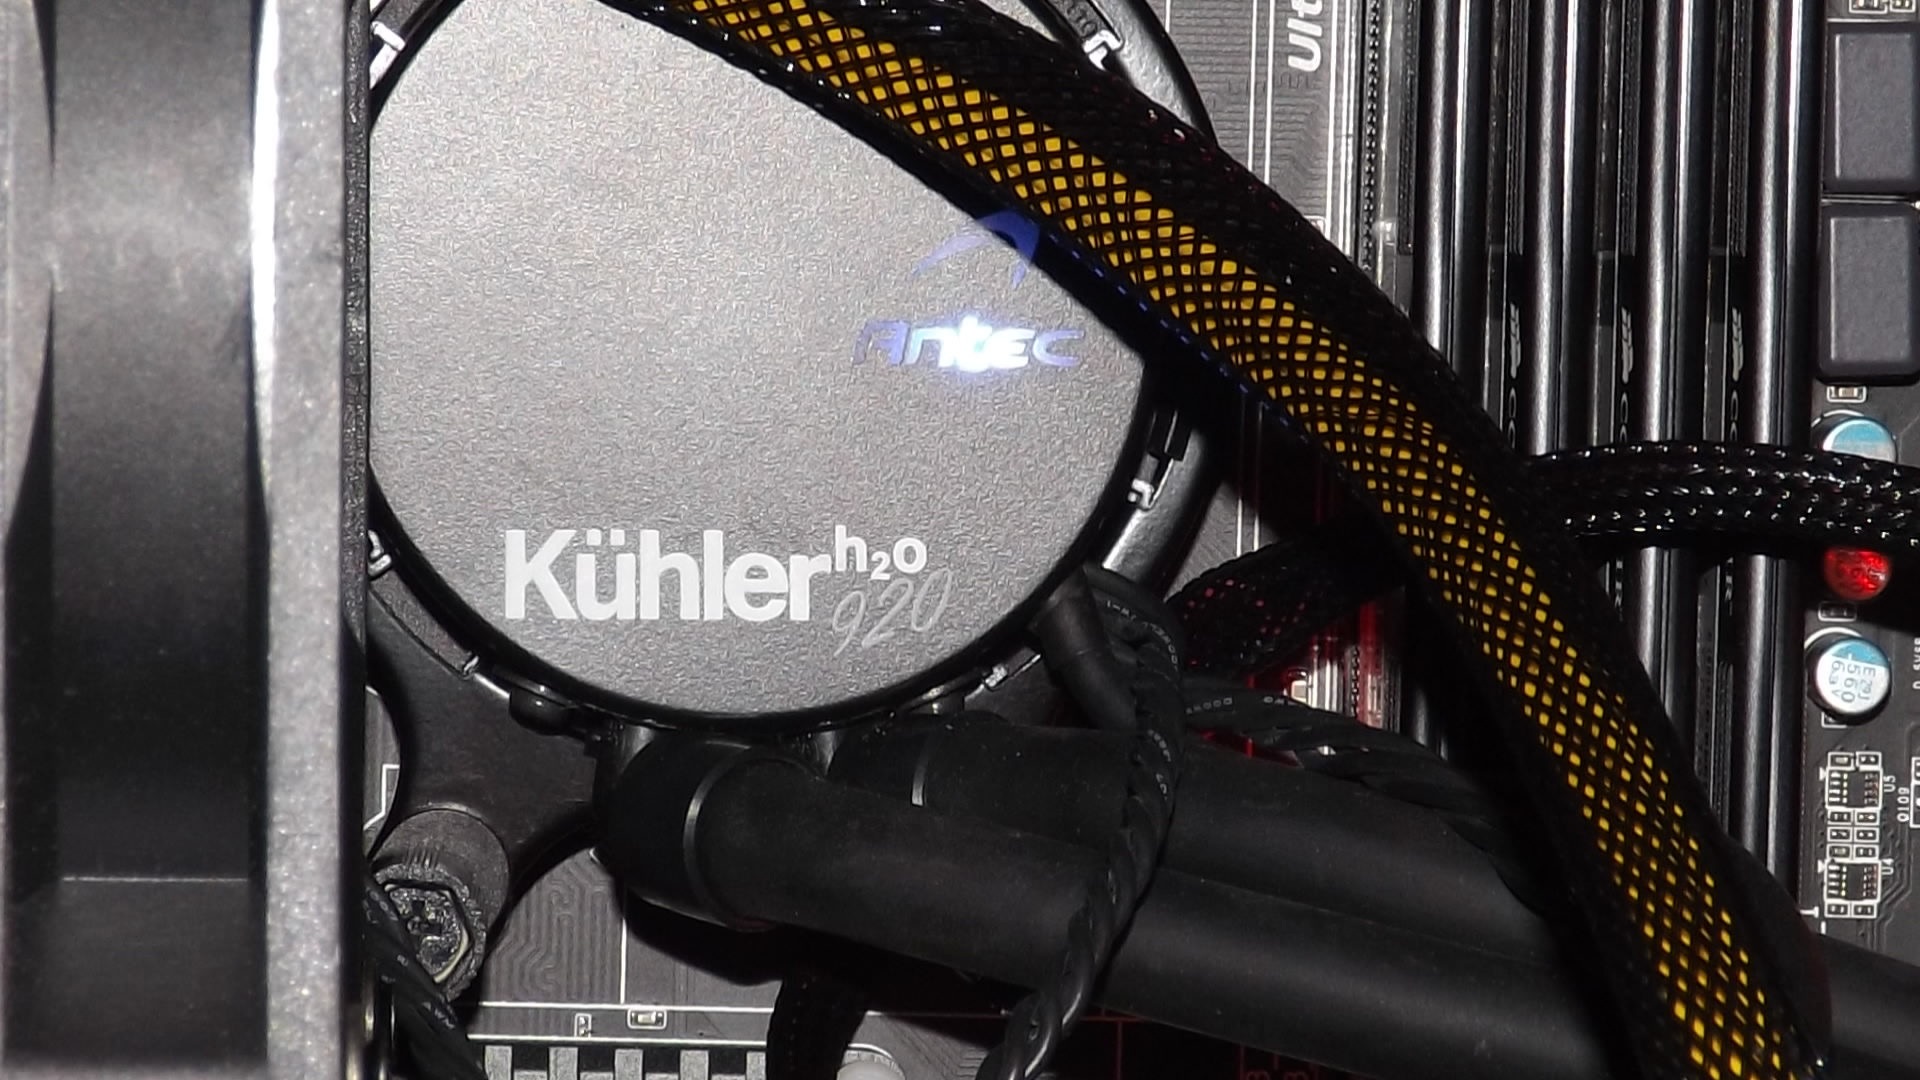 close up view of kuhler 920 water block, washed out from flash